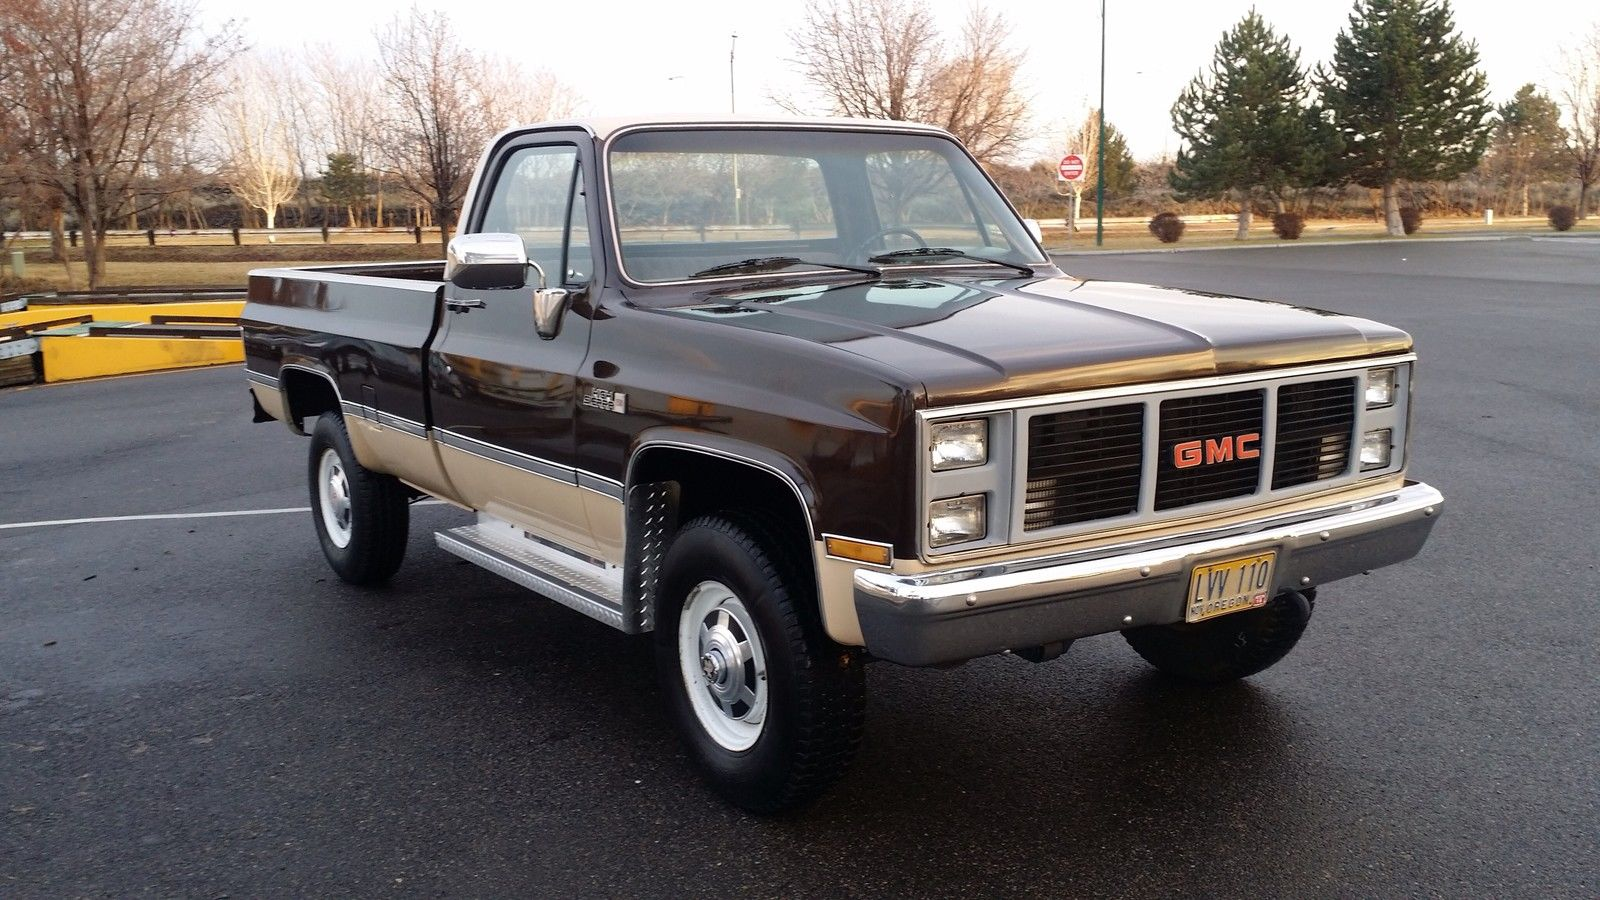 85 gmc 2500 4x4 70 991 thousand original miles one owner vary vary nice truck for sale in. Black Bedroom Furniture Sets. Home Design Ideas